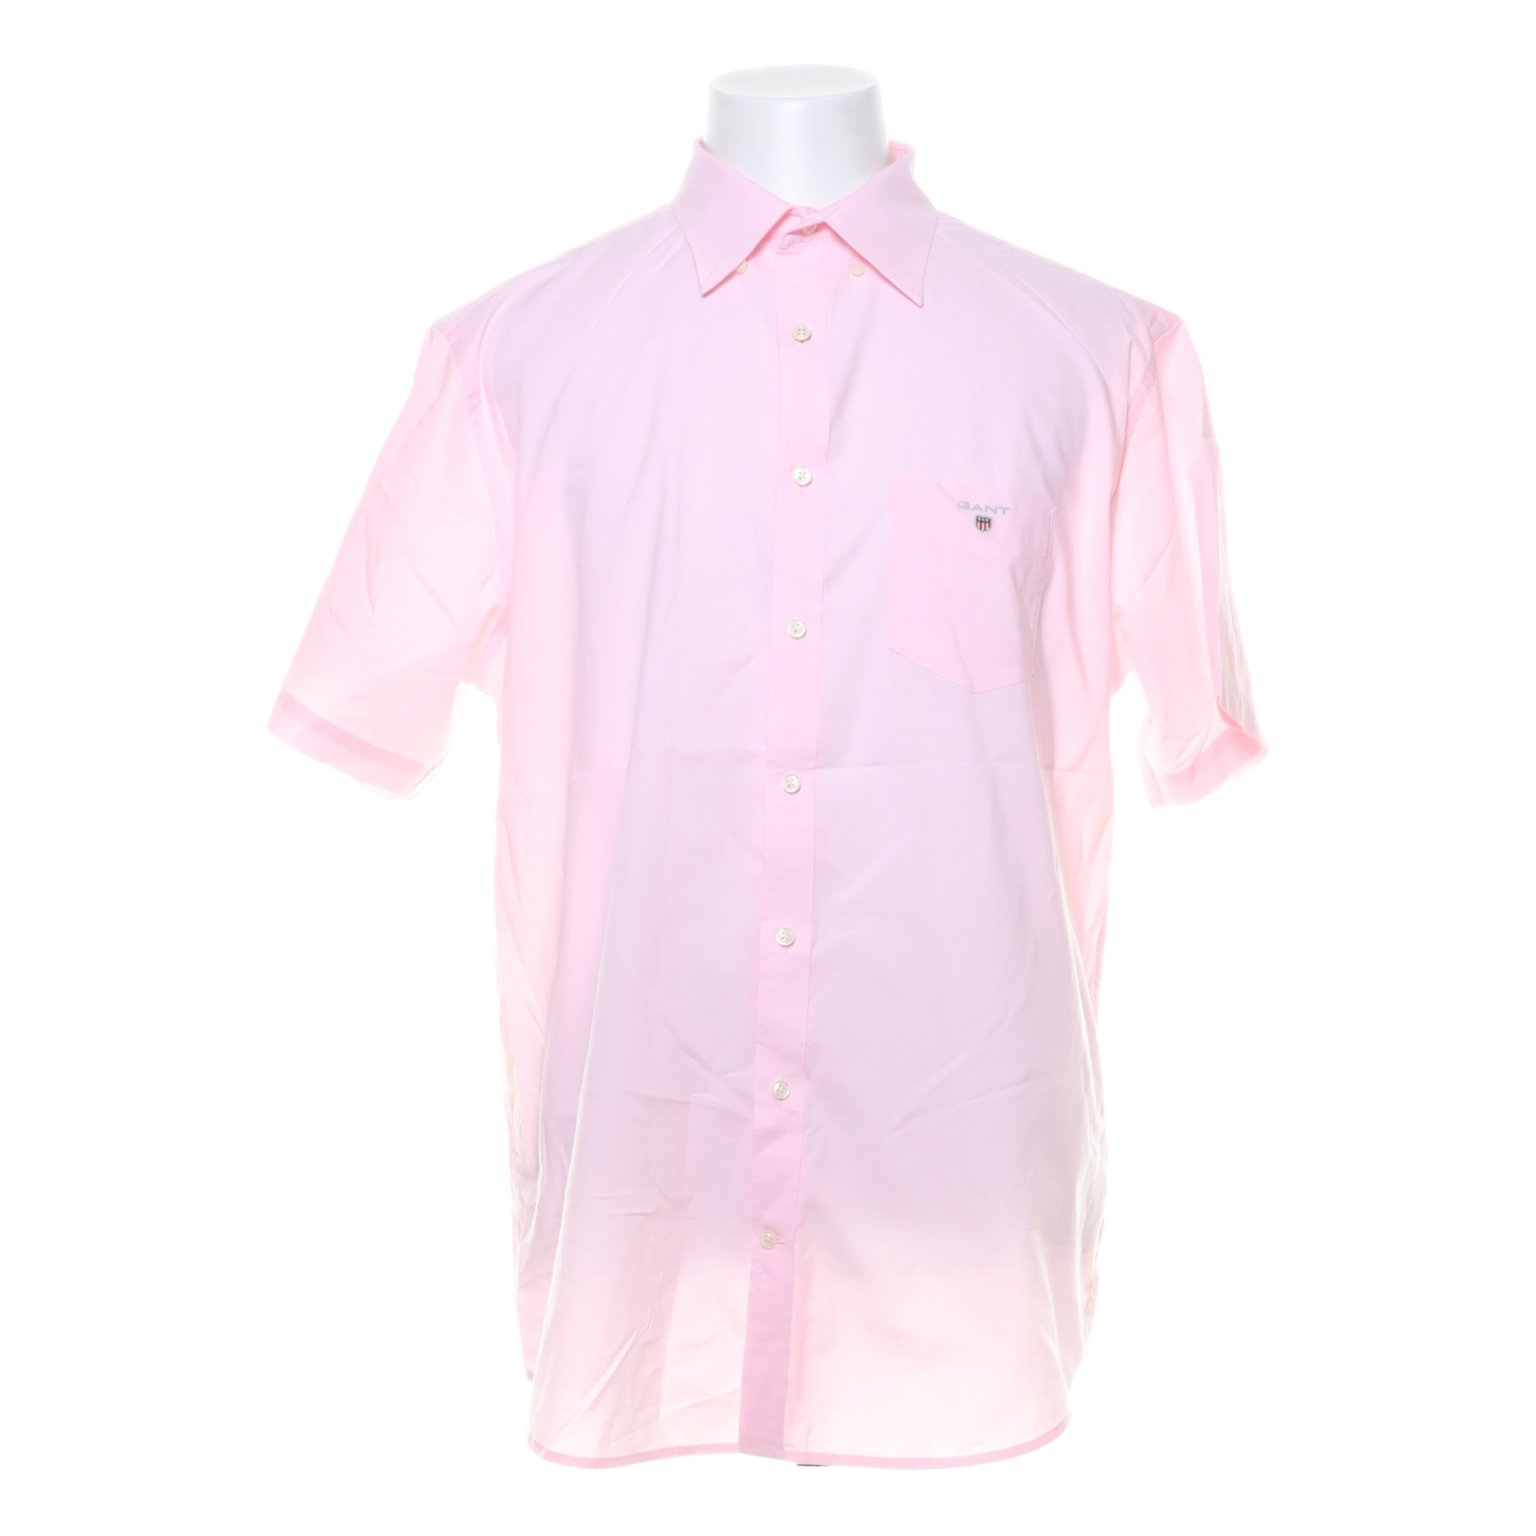 GANT, Buttondown-skjorta, Strl: XL, The Broadcloth Regular, Rosa, Bomull